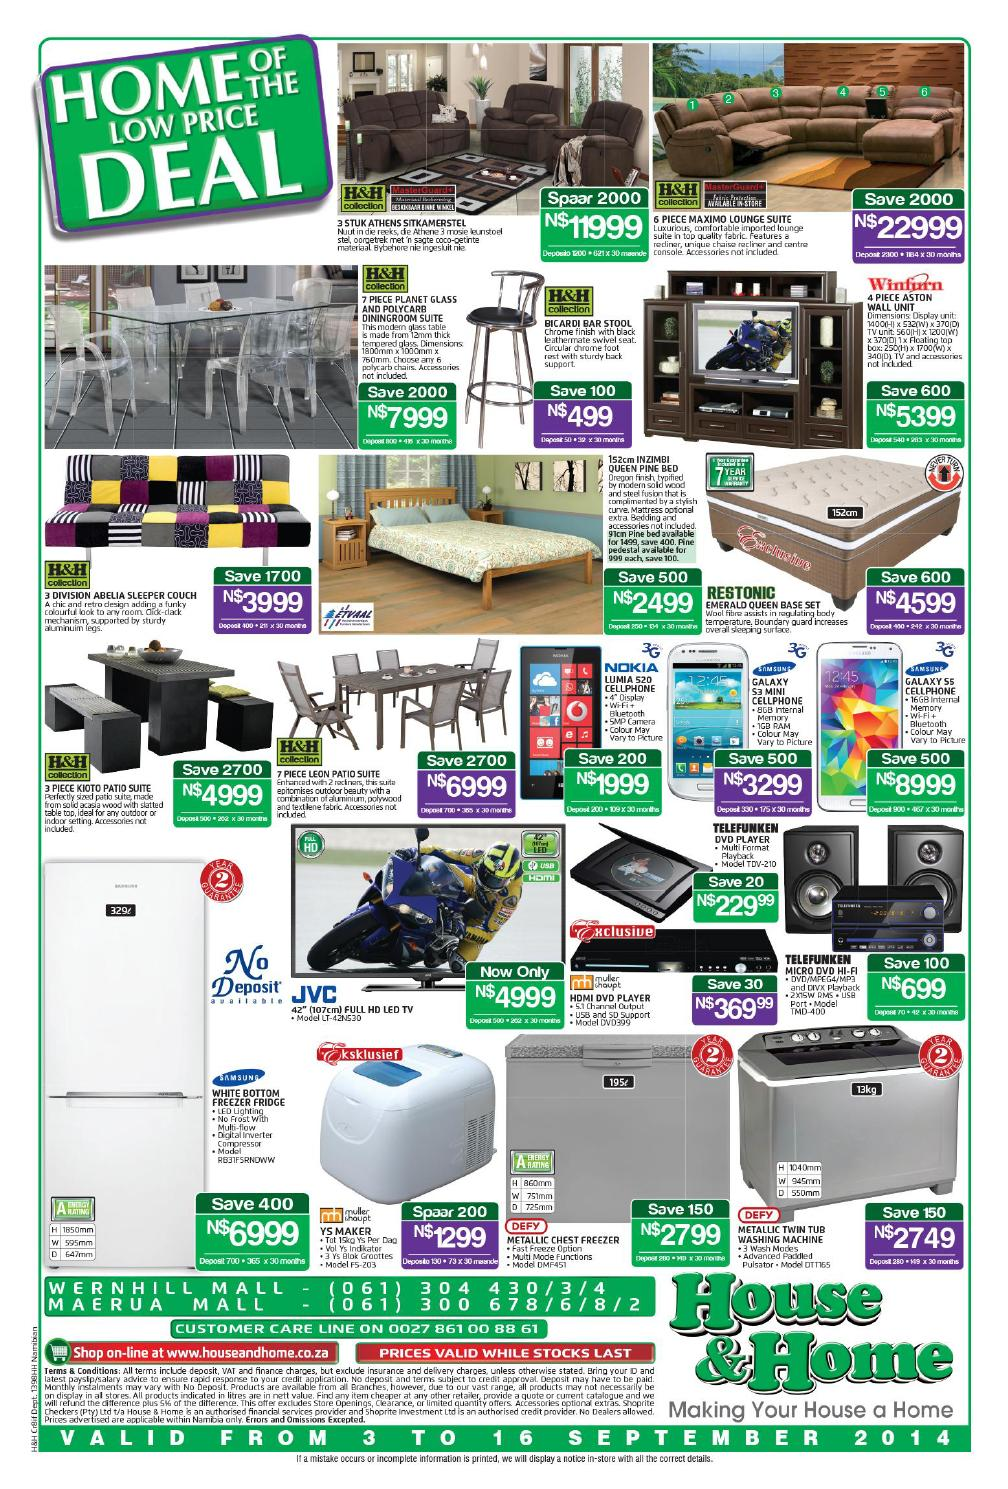 house home catalogue namibia validity 3 16 september 2014 by ok furniture issuu